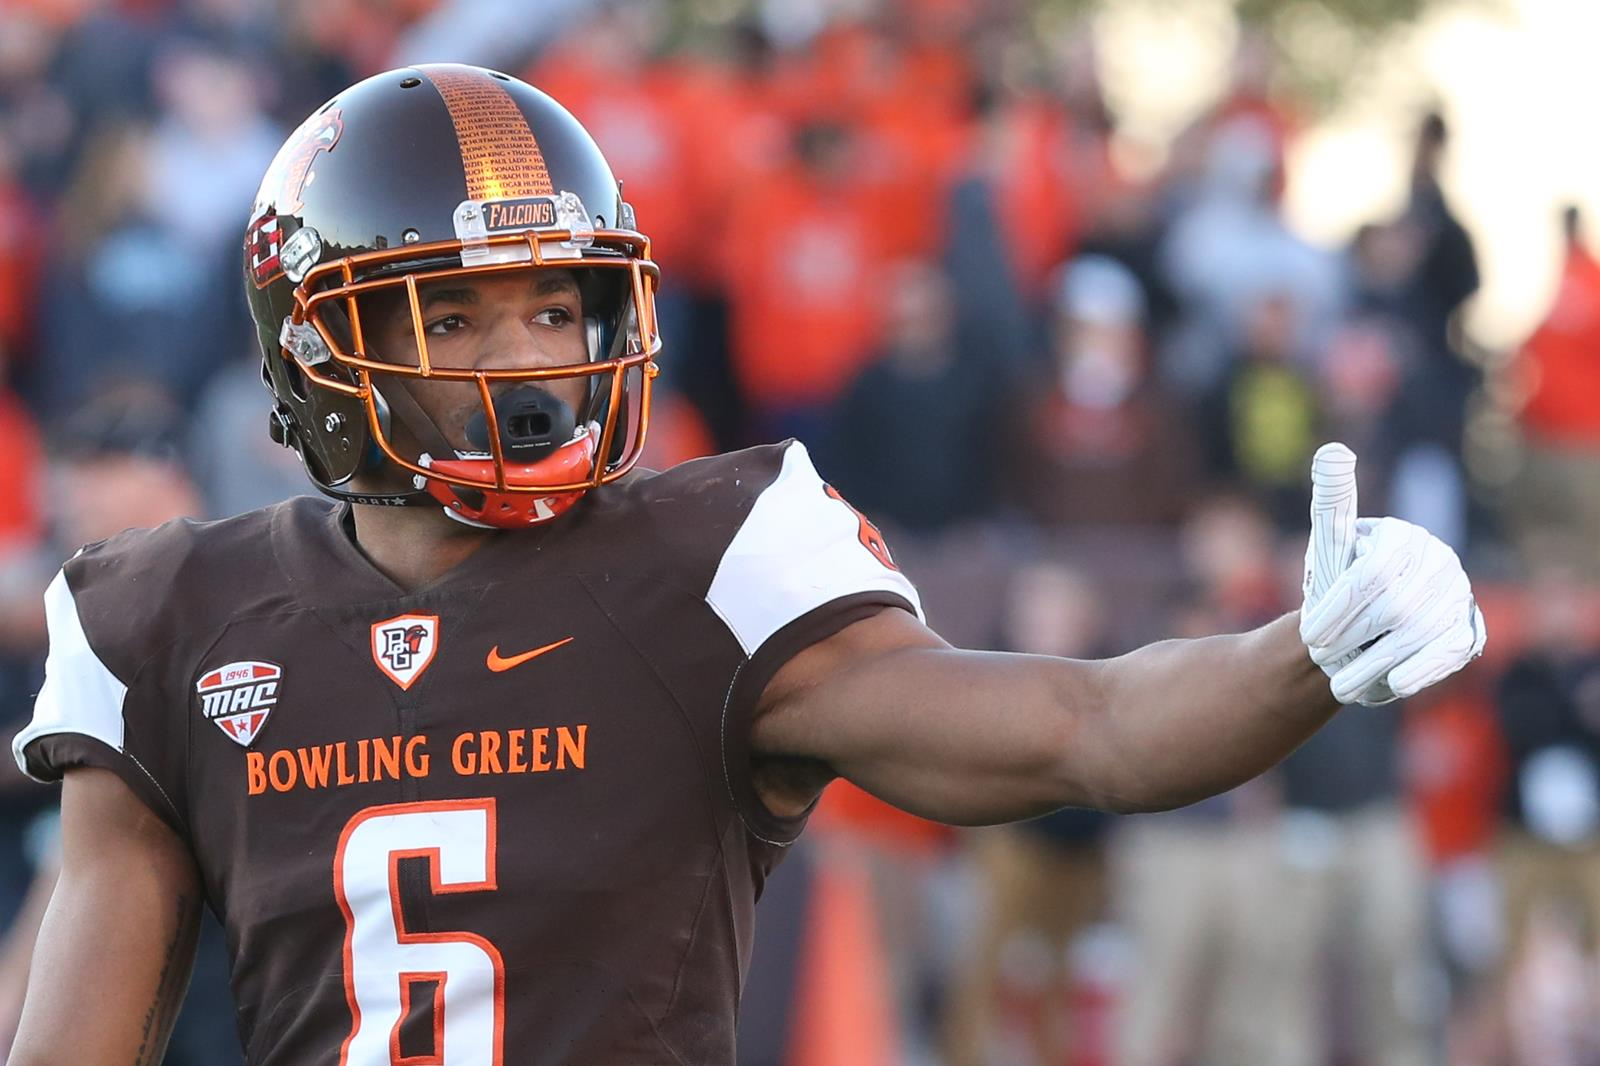 at the game: miami - bowling green state university athletics